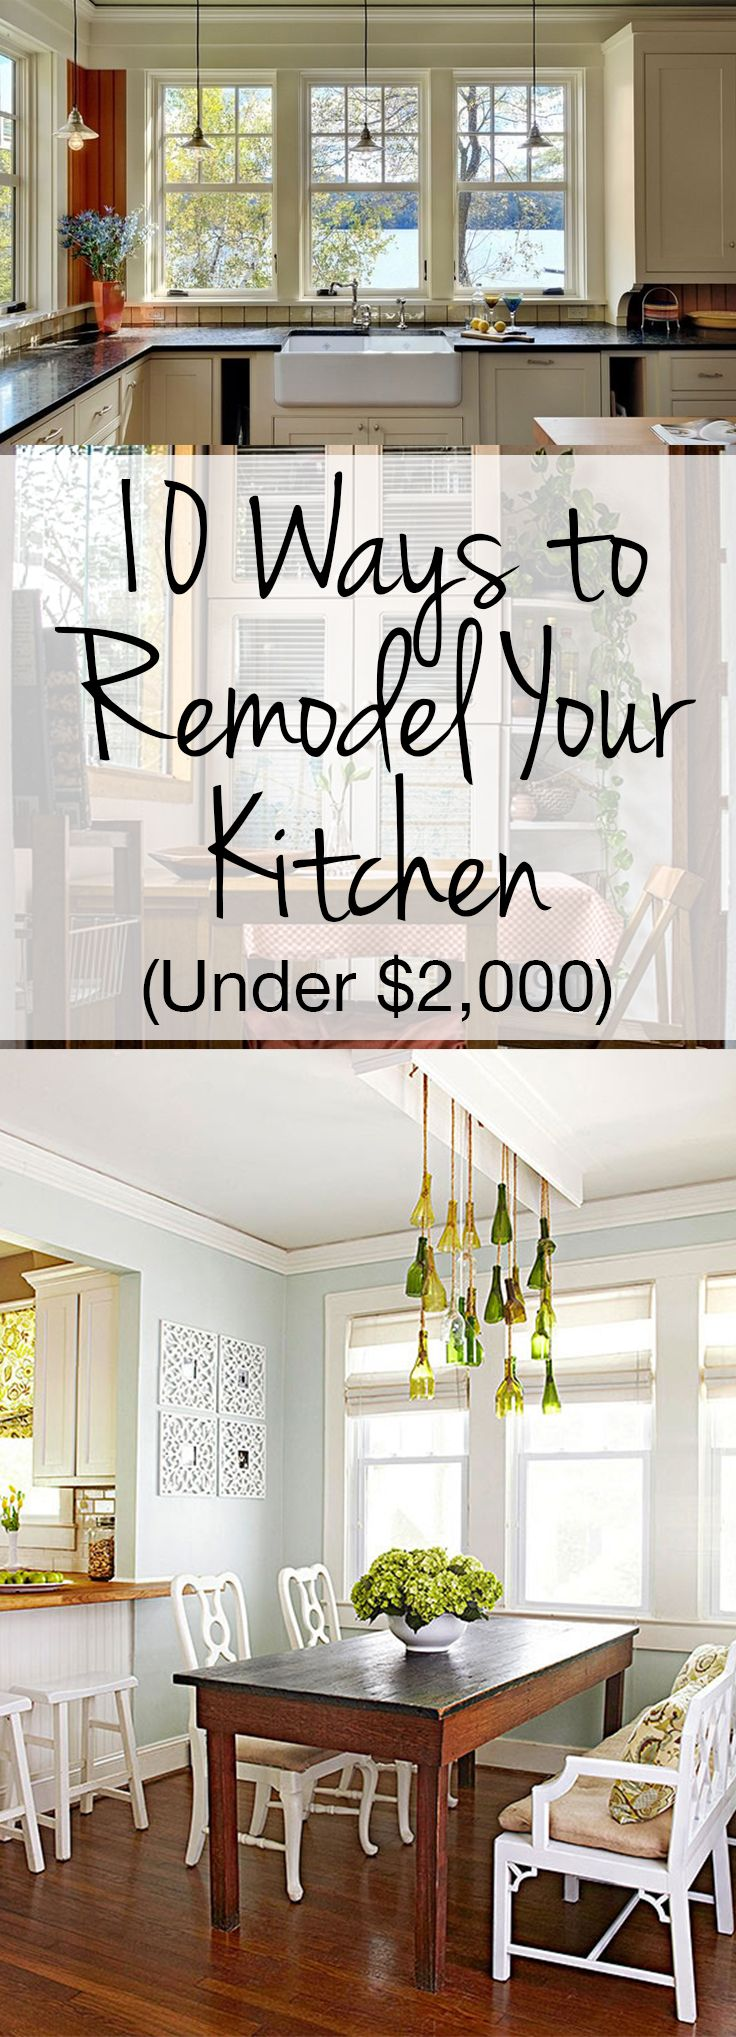 10 Ways To Remodel Your Kitchen (Under $2,000)